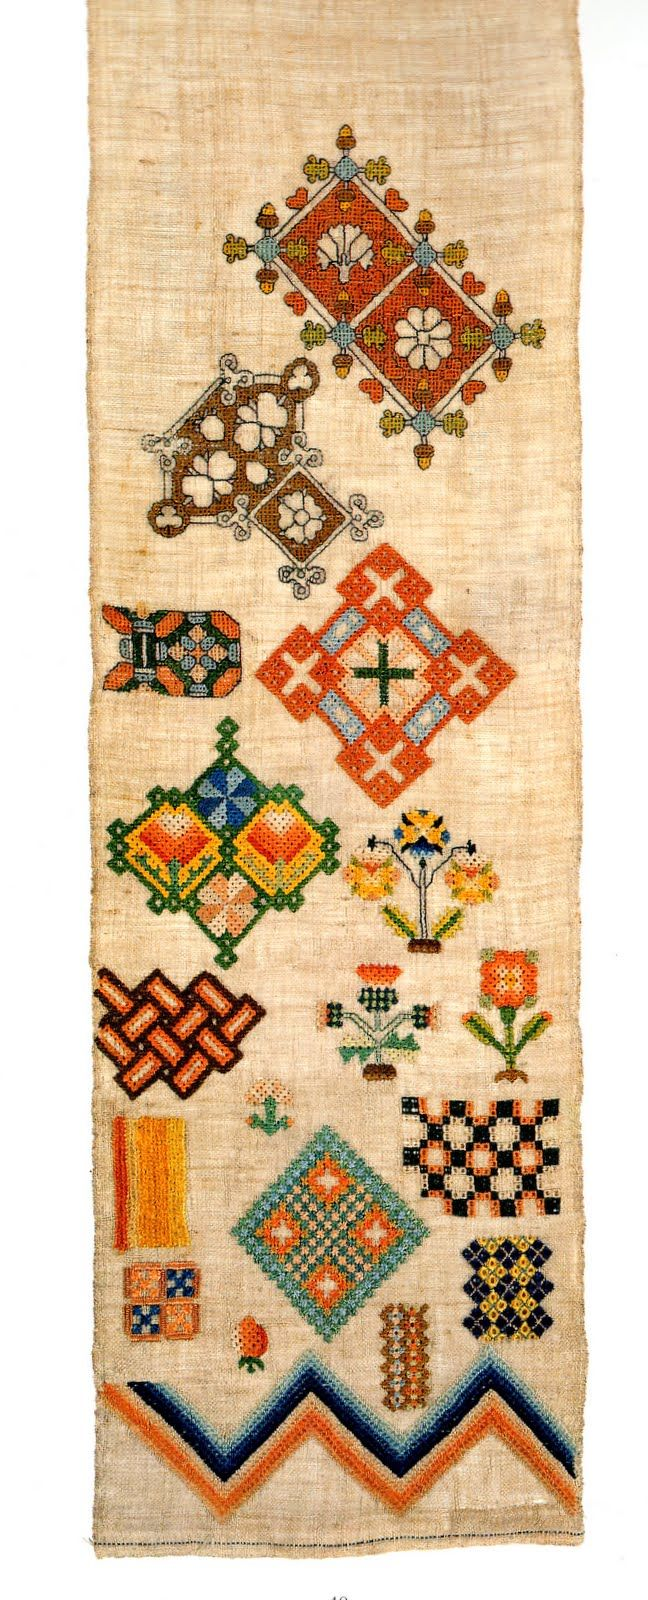 The posy tree traditional embroidered samplers iv a th century